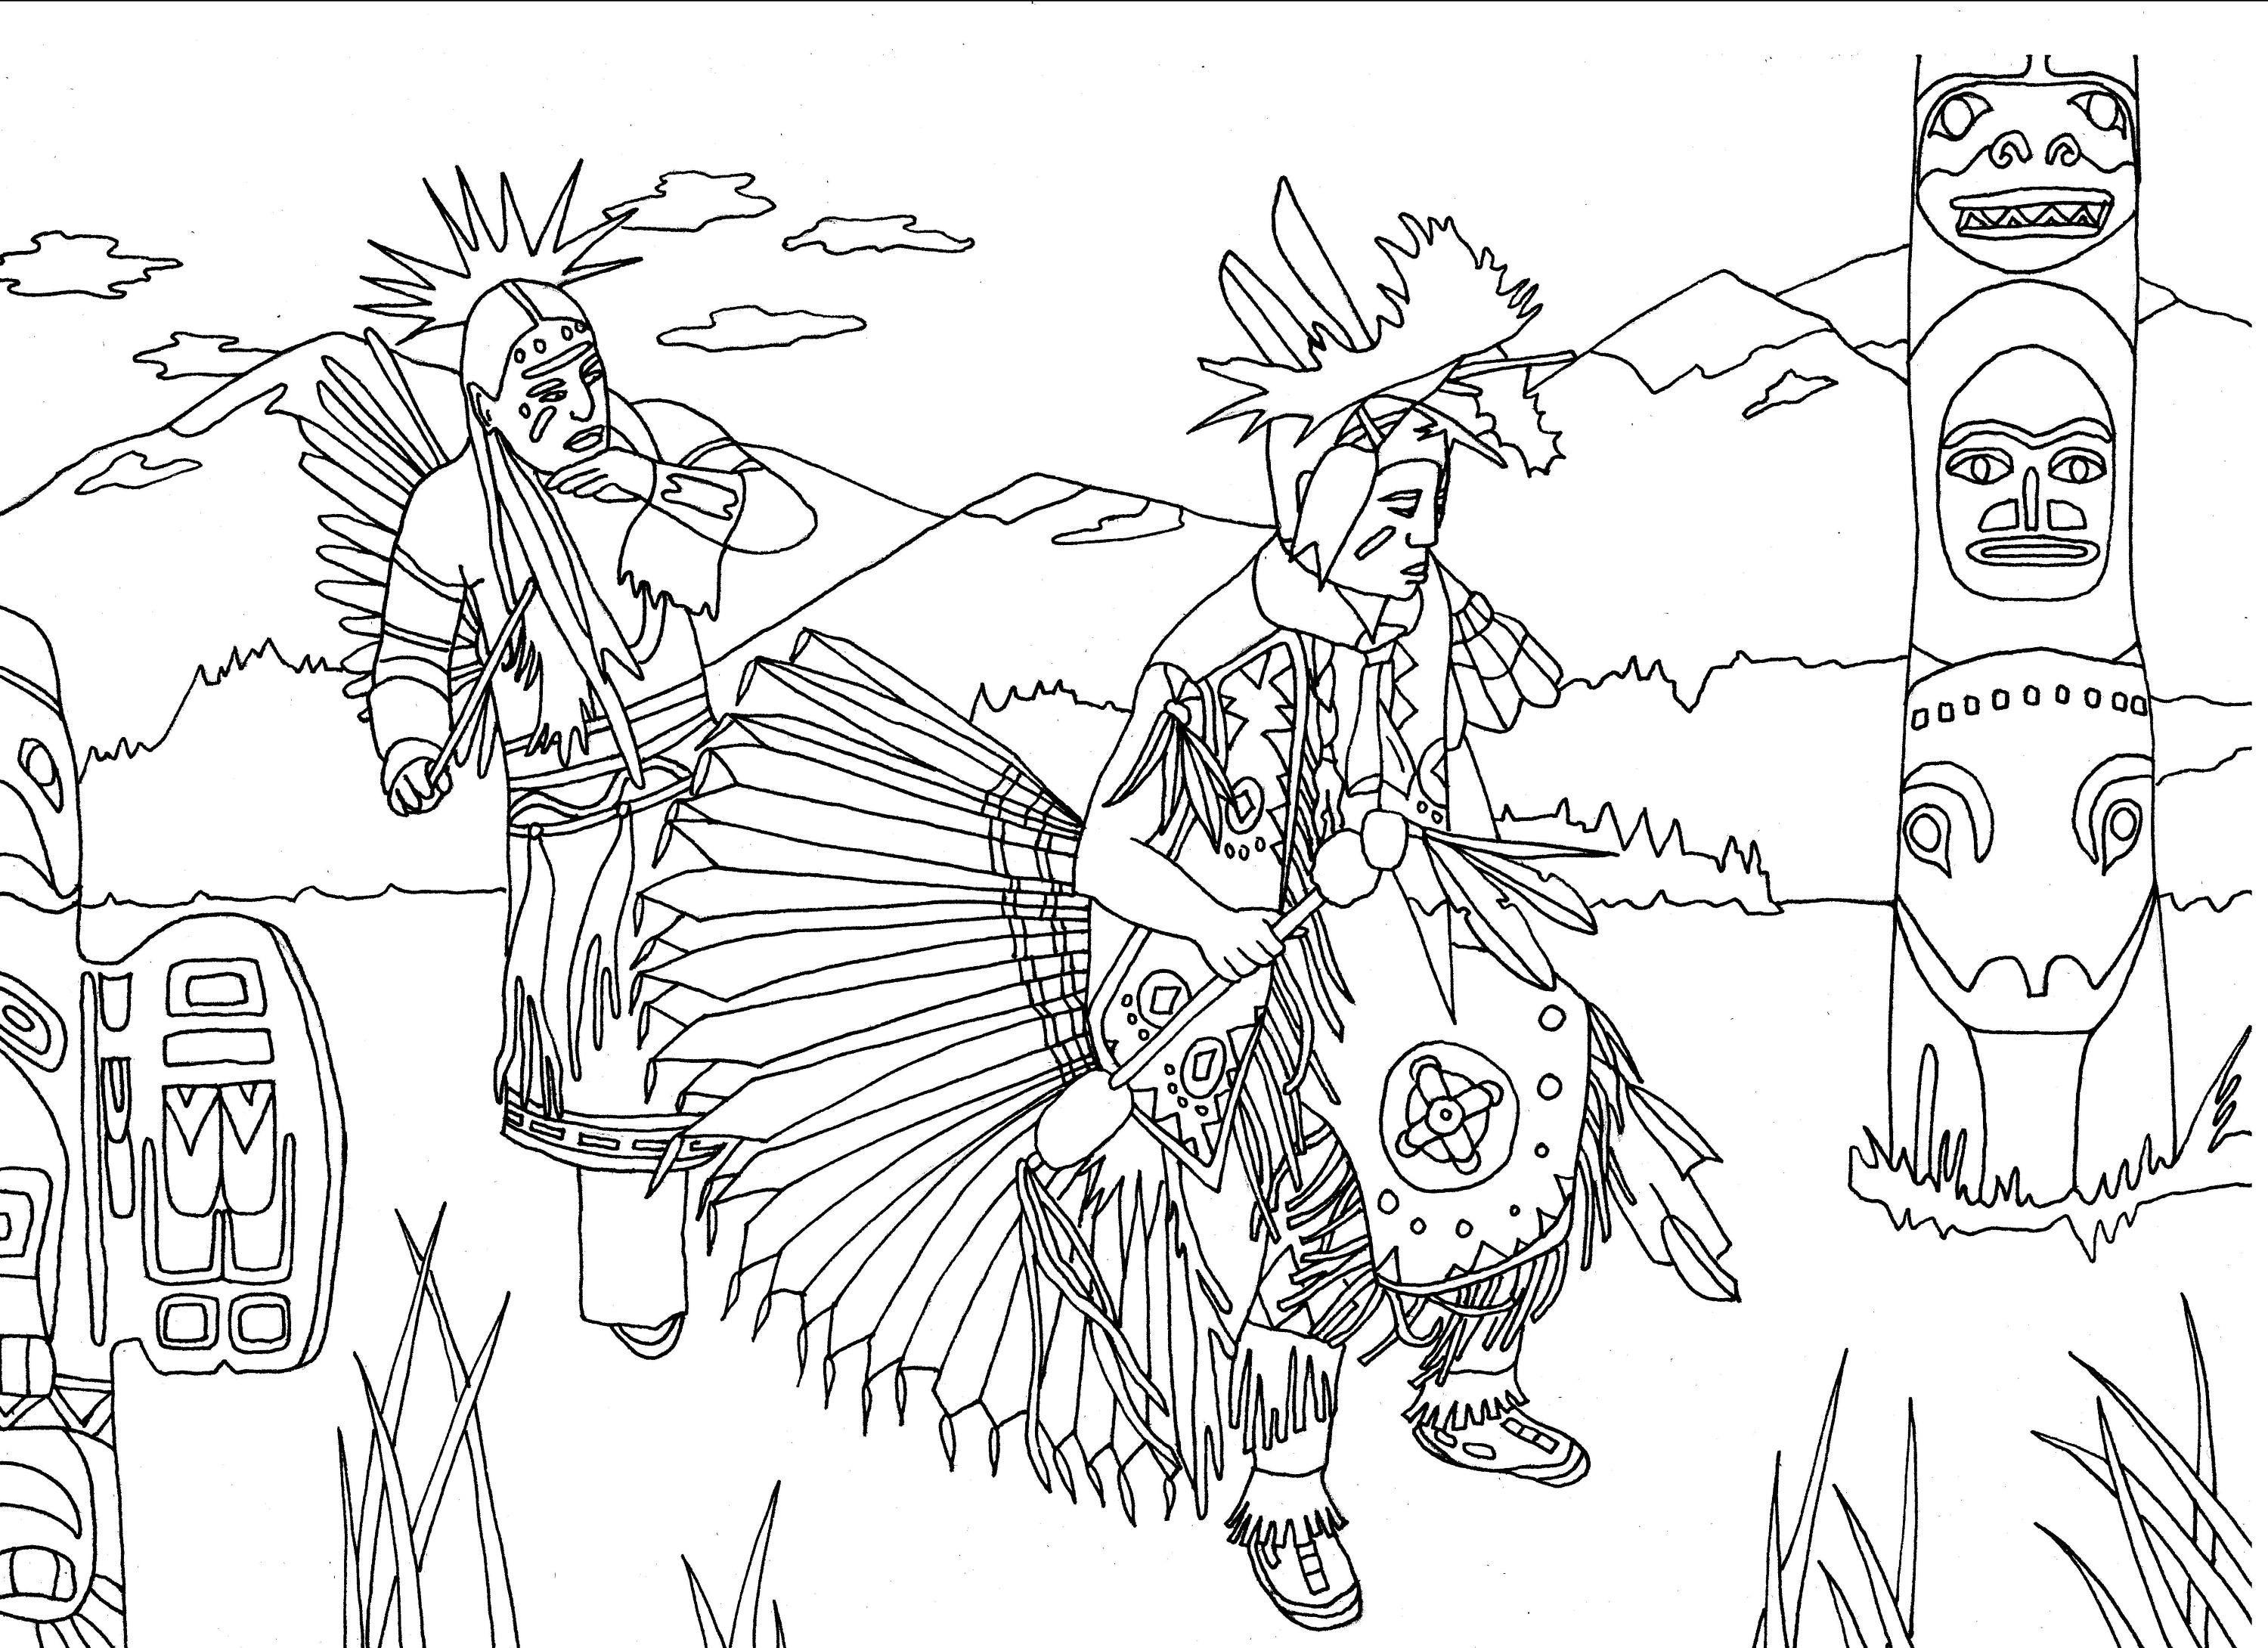 native americans dancing next to a totem - Native American Coloring Pages